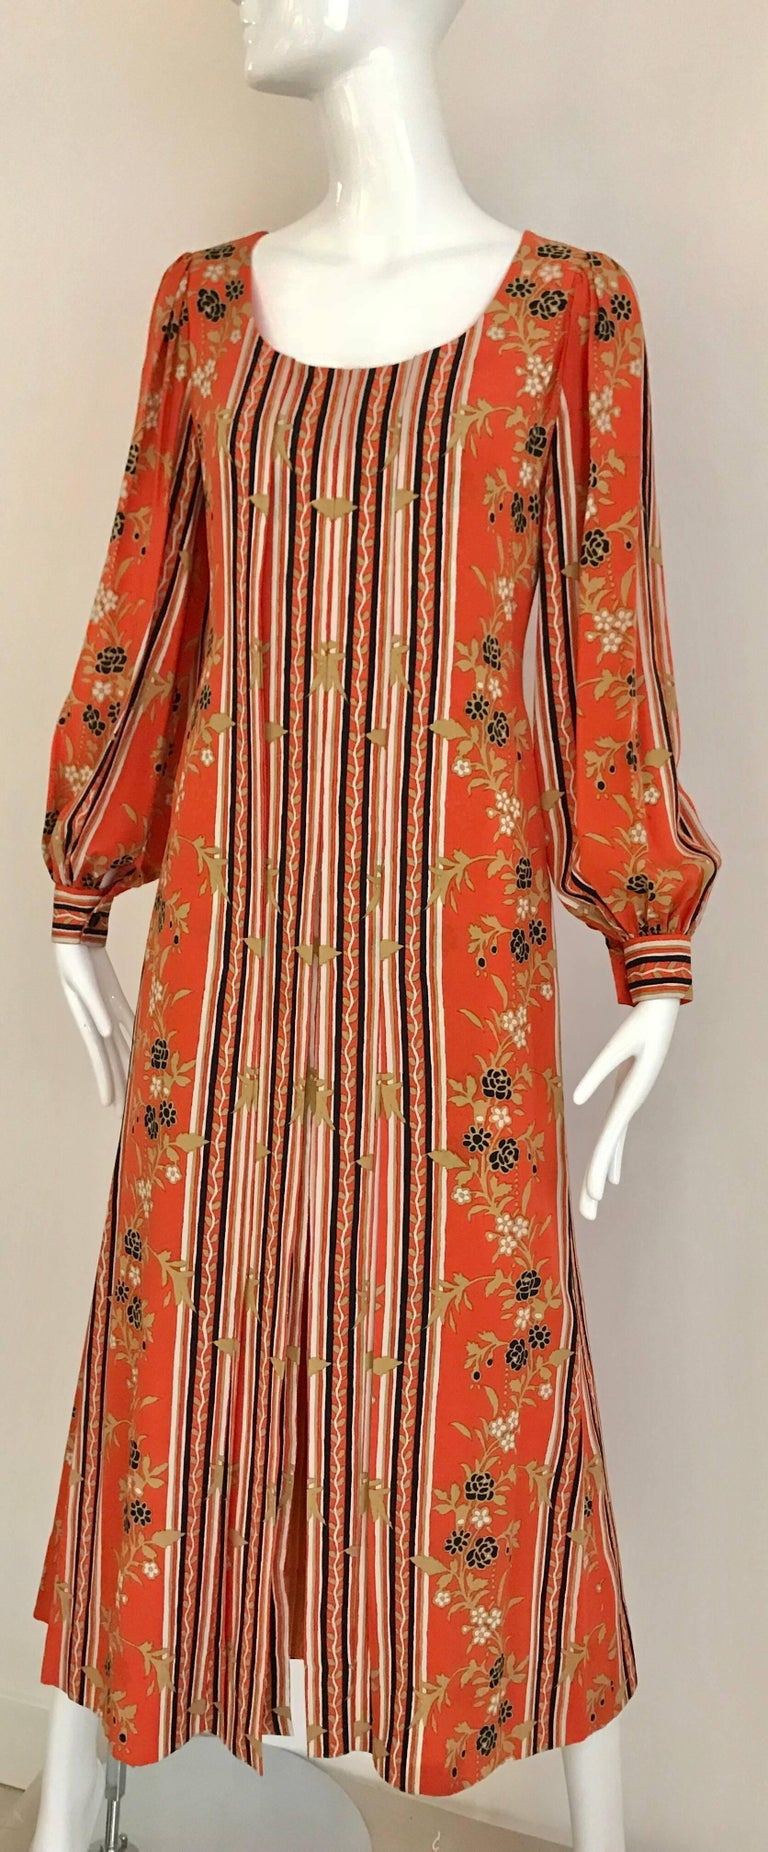 Brown 1970s GALANOS Orange and Black Floral Silk Print Dress with Vest  For Sale